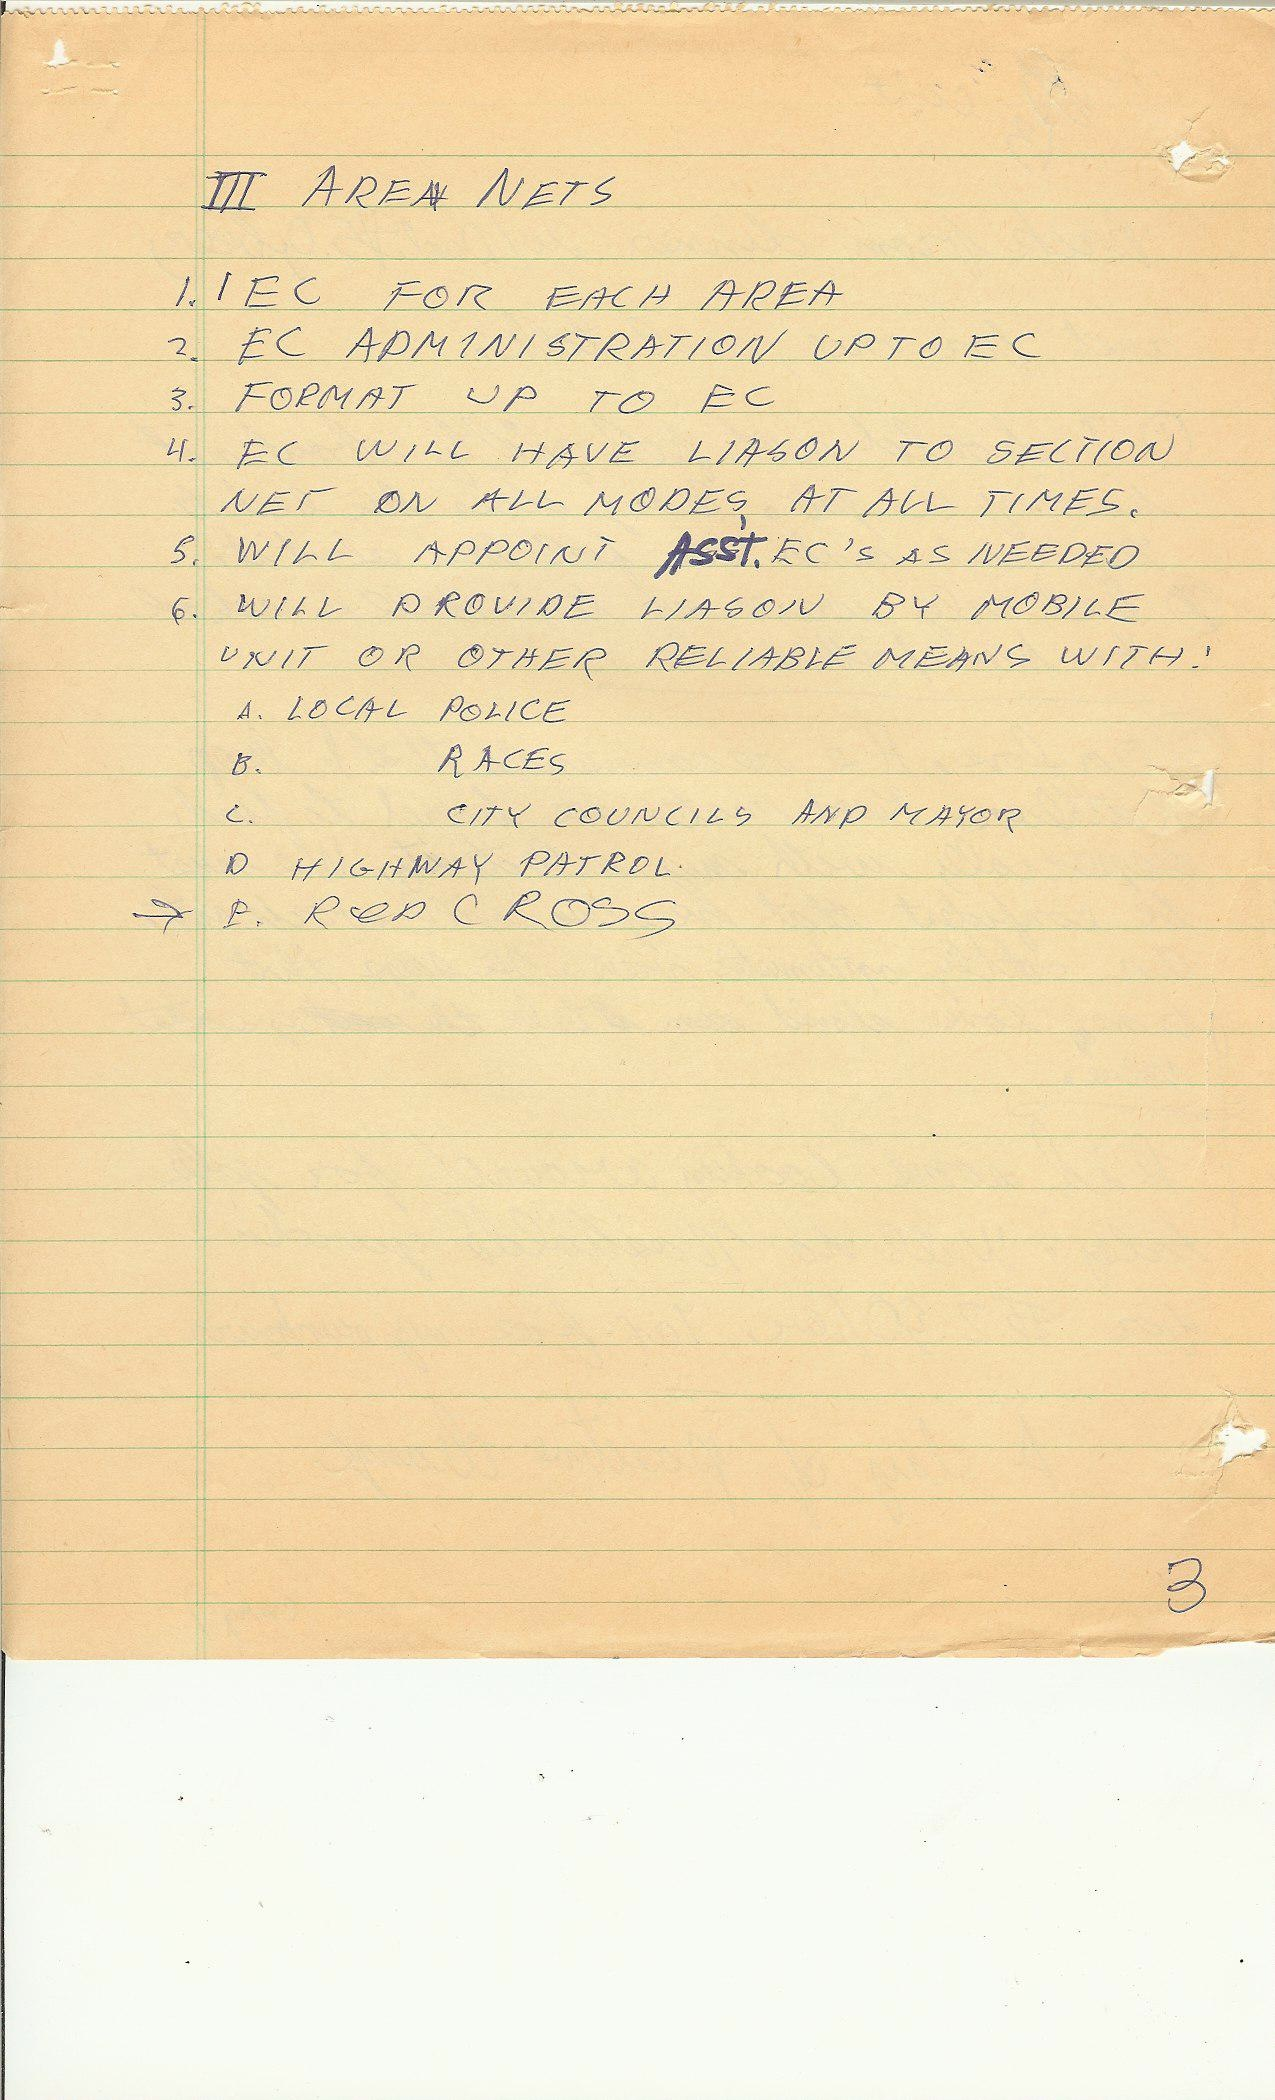 1971 RACES notes